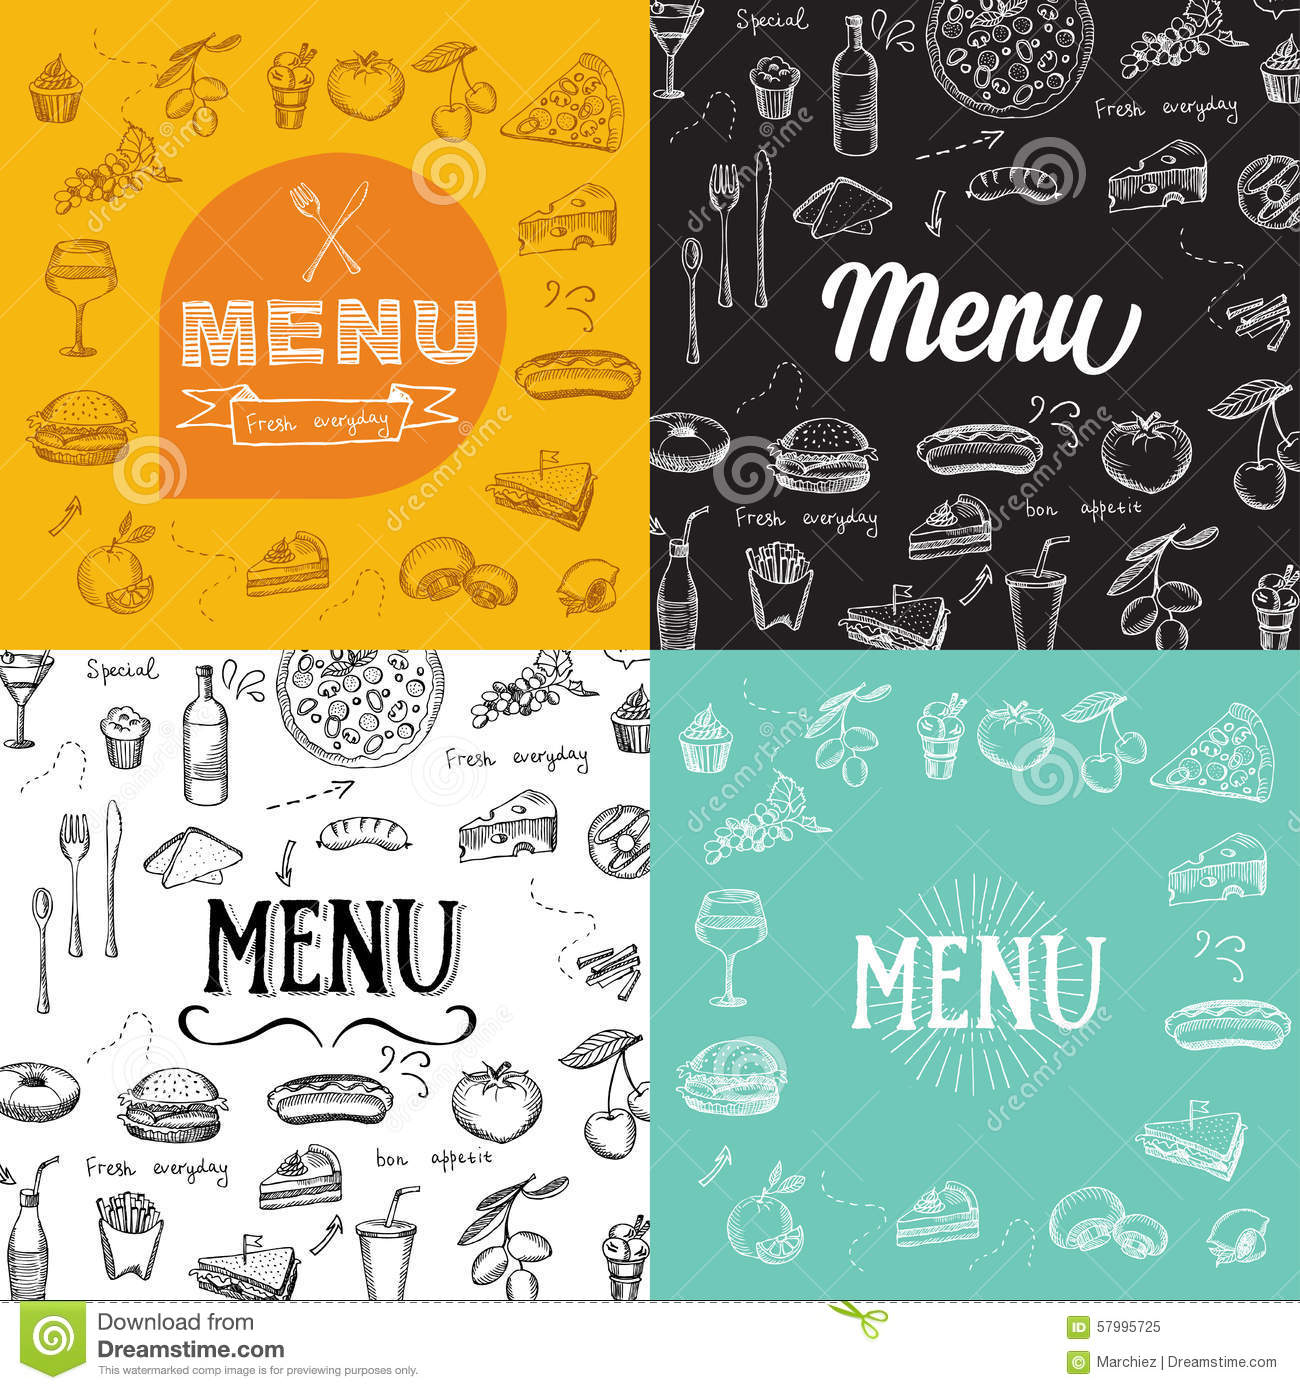 Restaurant Design Graphic : Restaurant cafe menu template design food flyer stock